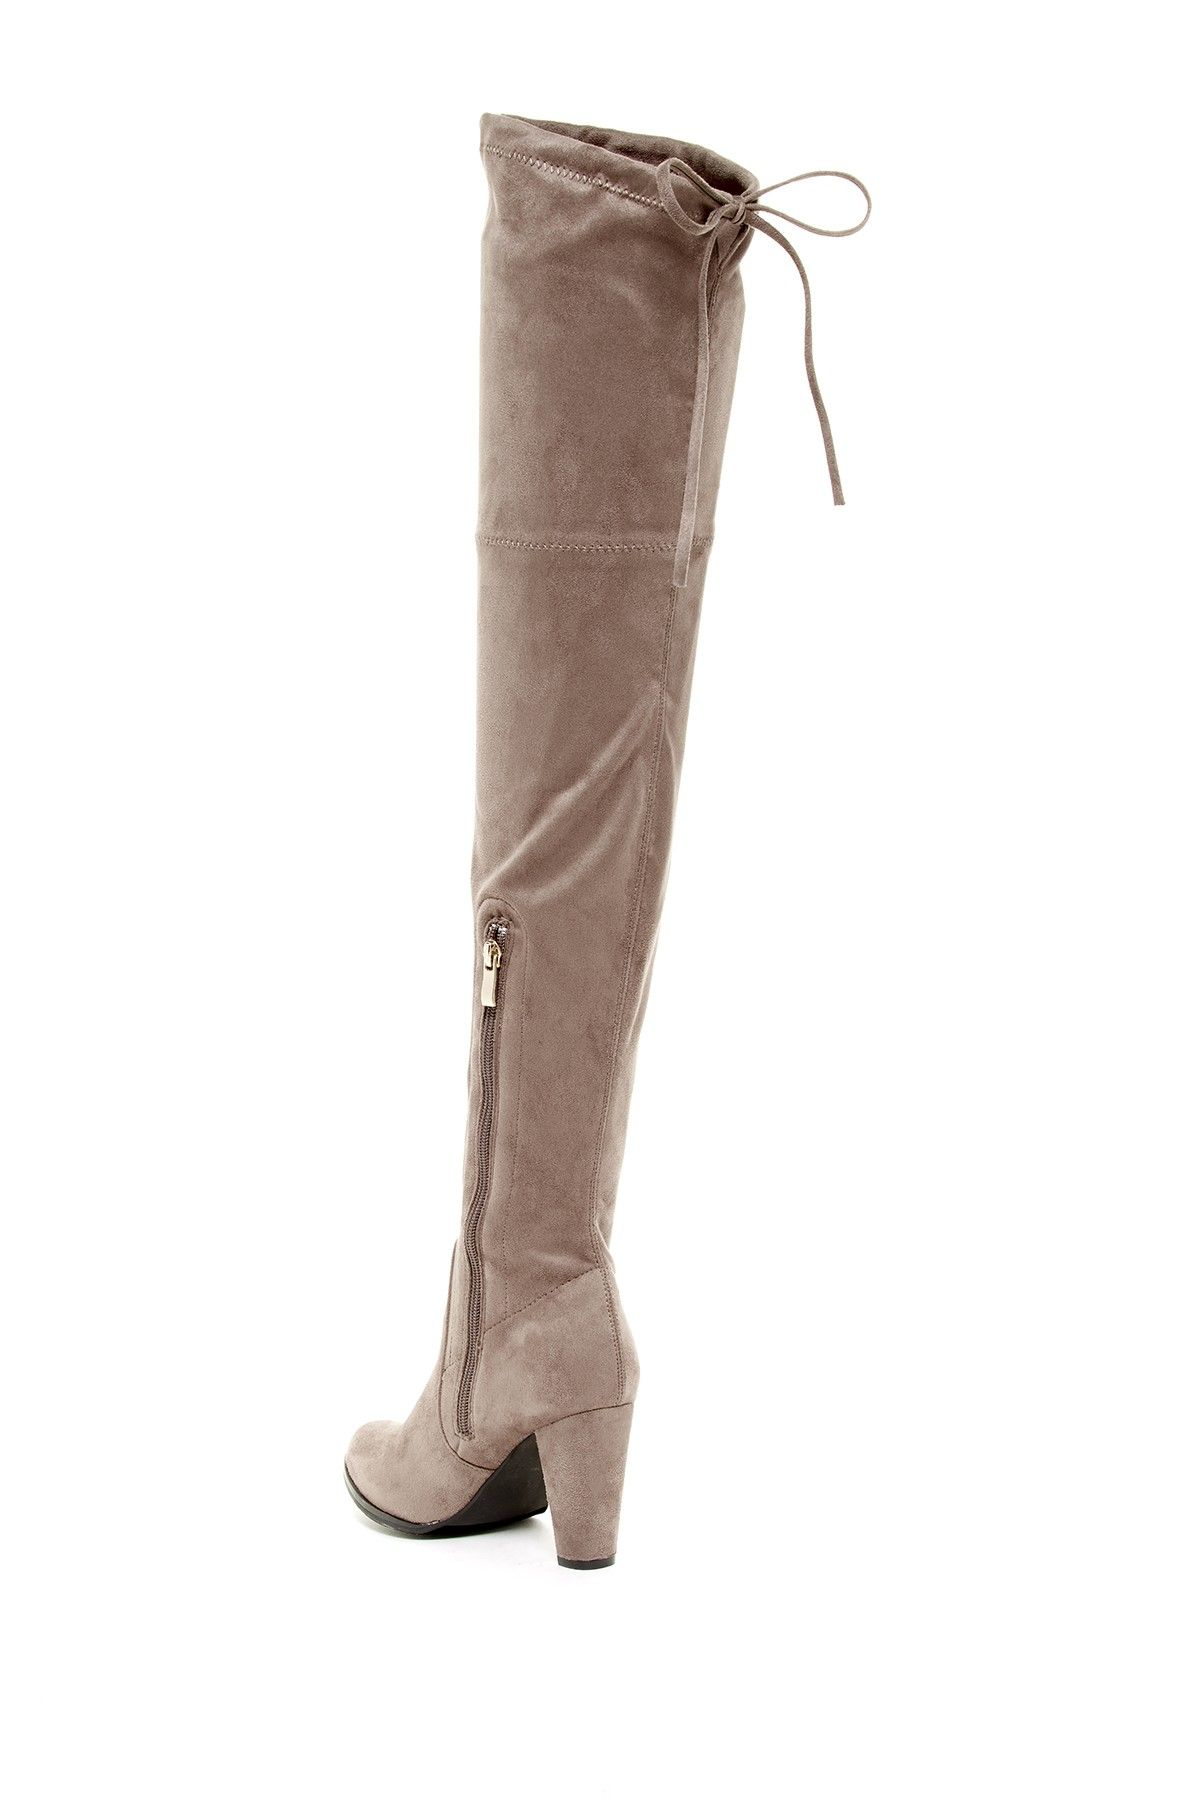 dca7871feb5 Sorcha Over-The-Knee Boot by Catherine Catherine Malandrino on   nordstrom rack